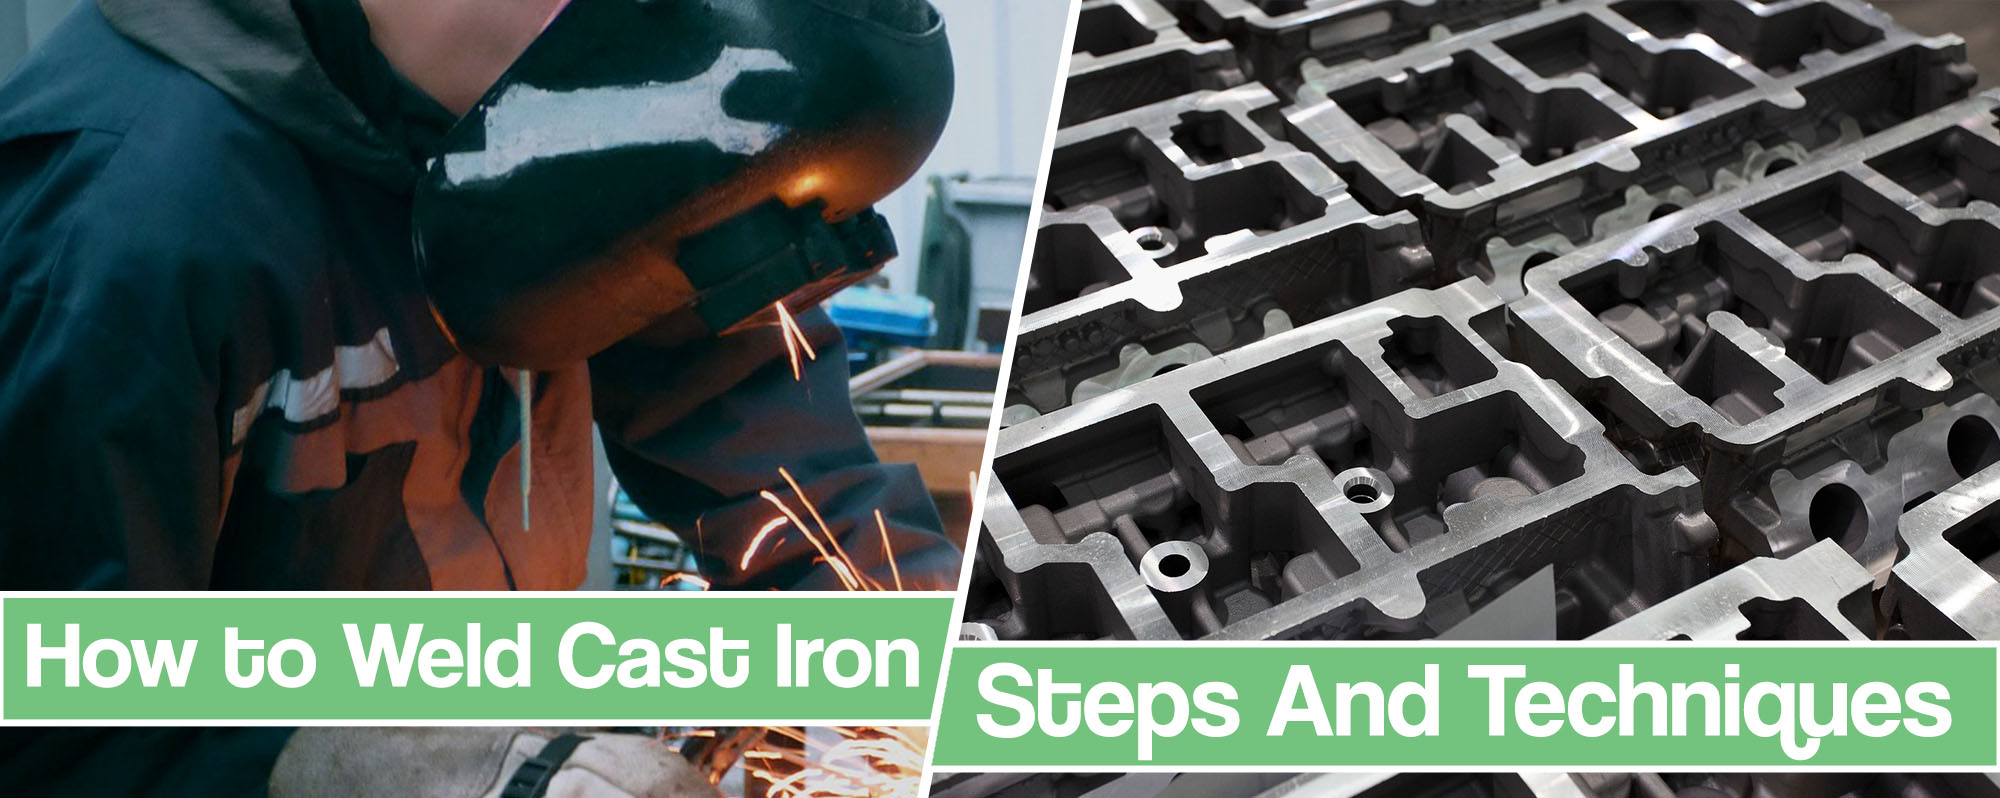 Feature image for How to Weld Cast Iron article